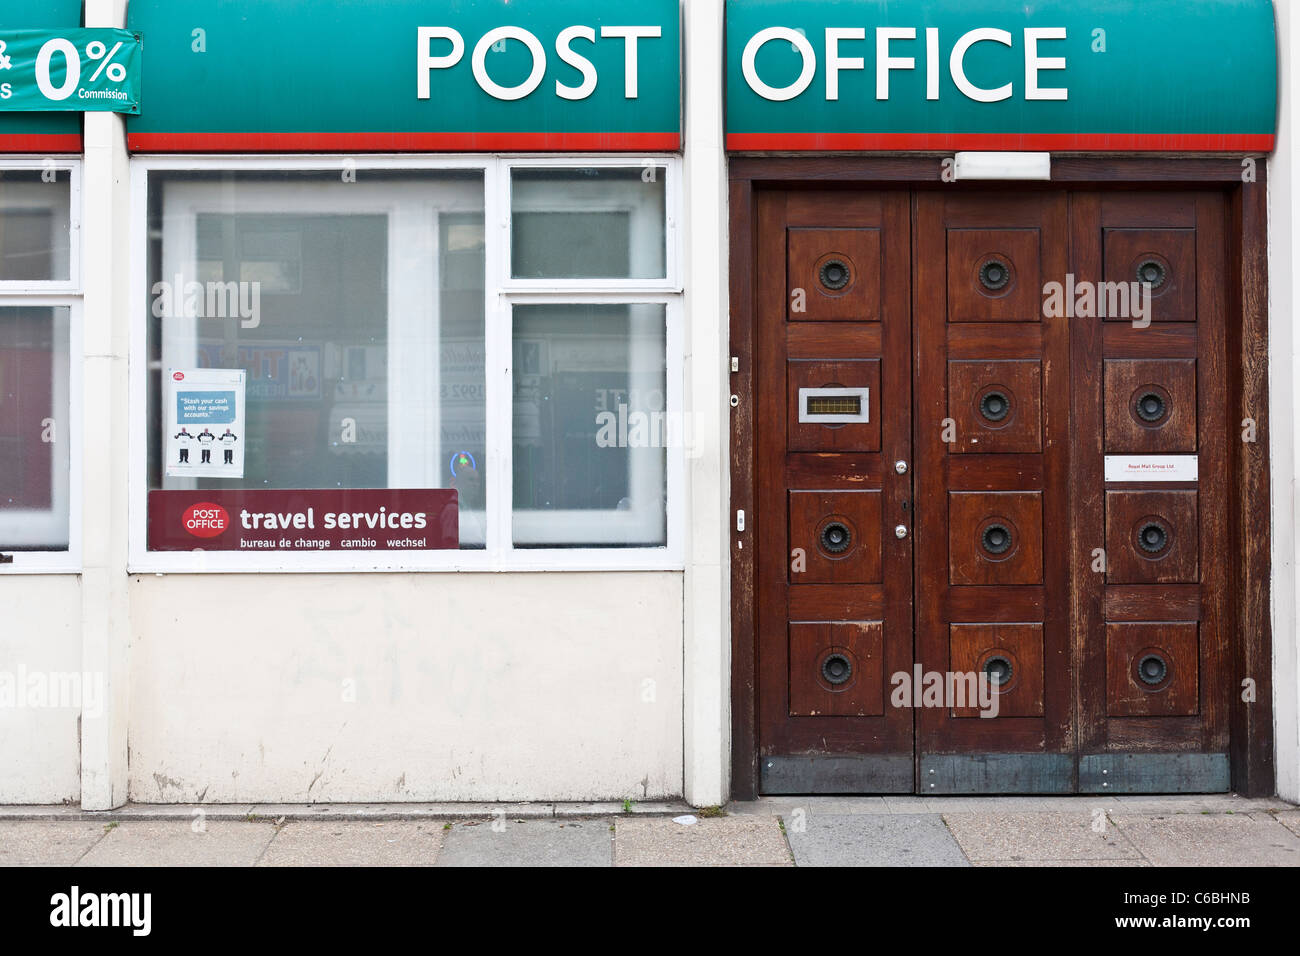 A branch of Post Office in London - Stock Image